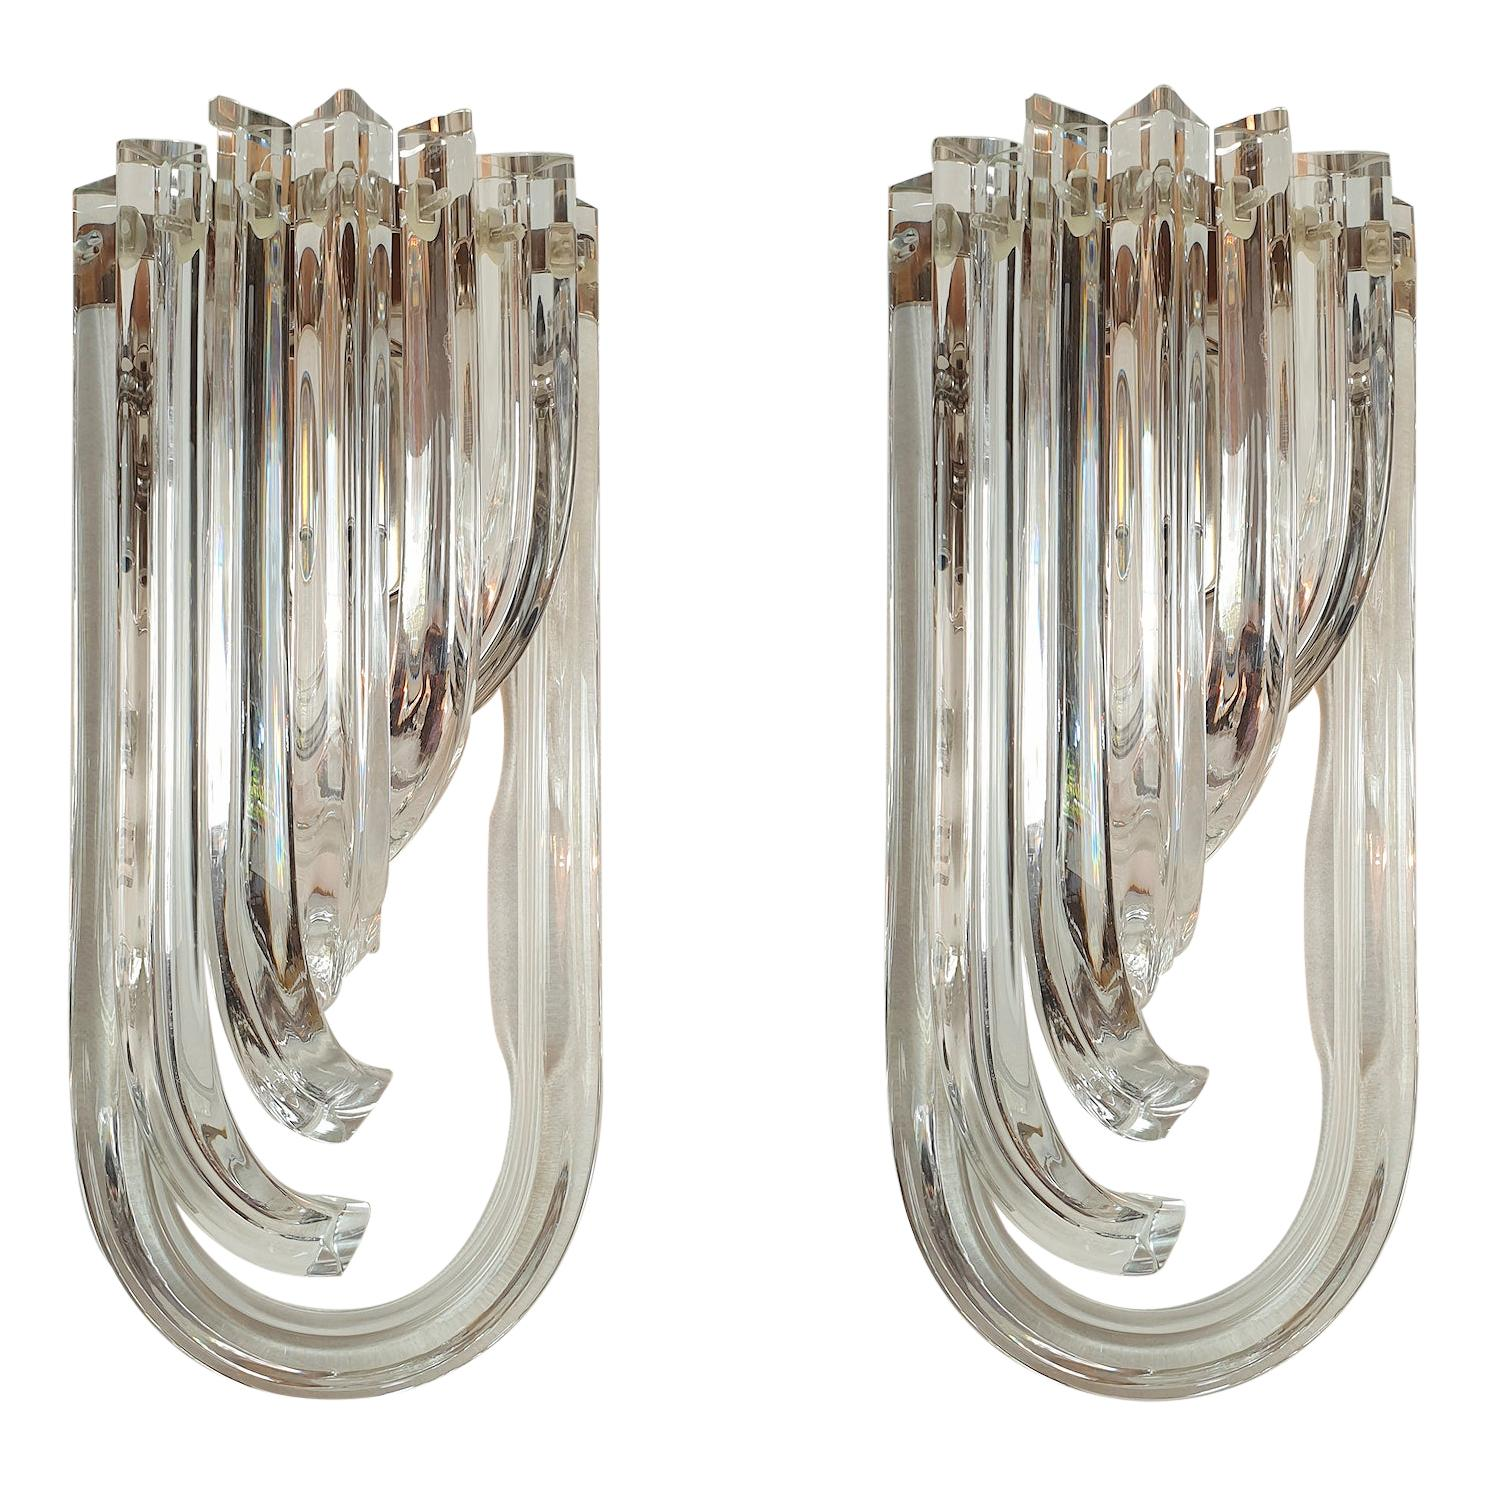 Curved Triedri Clear Murano Glass Sconces, Mid-Century Modern by Venini Italy